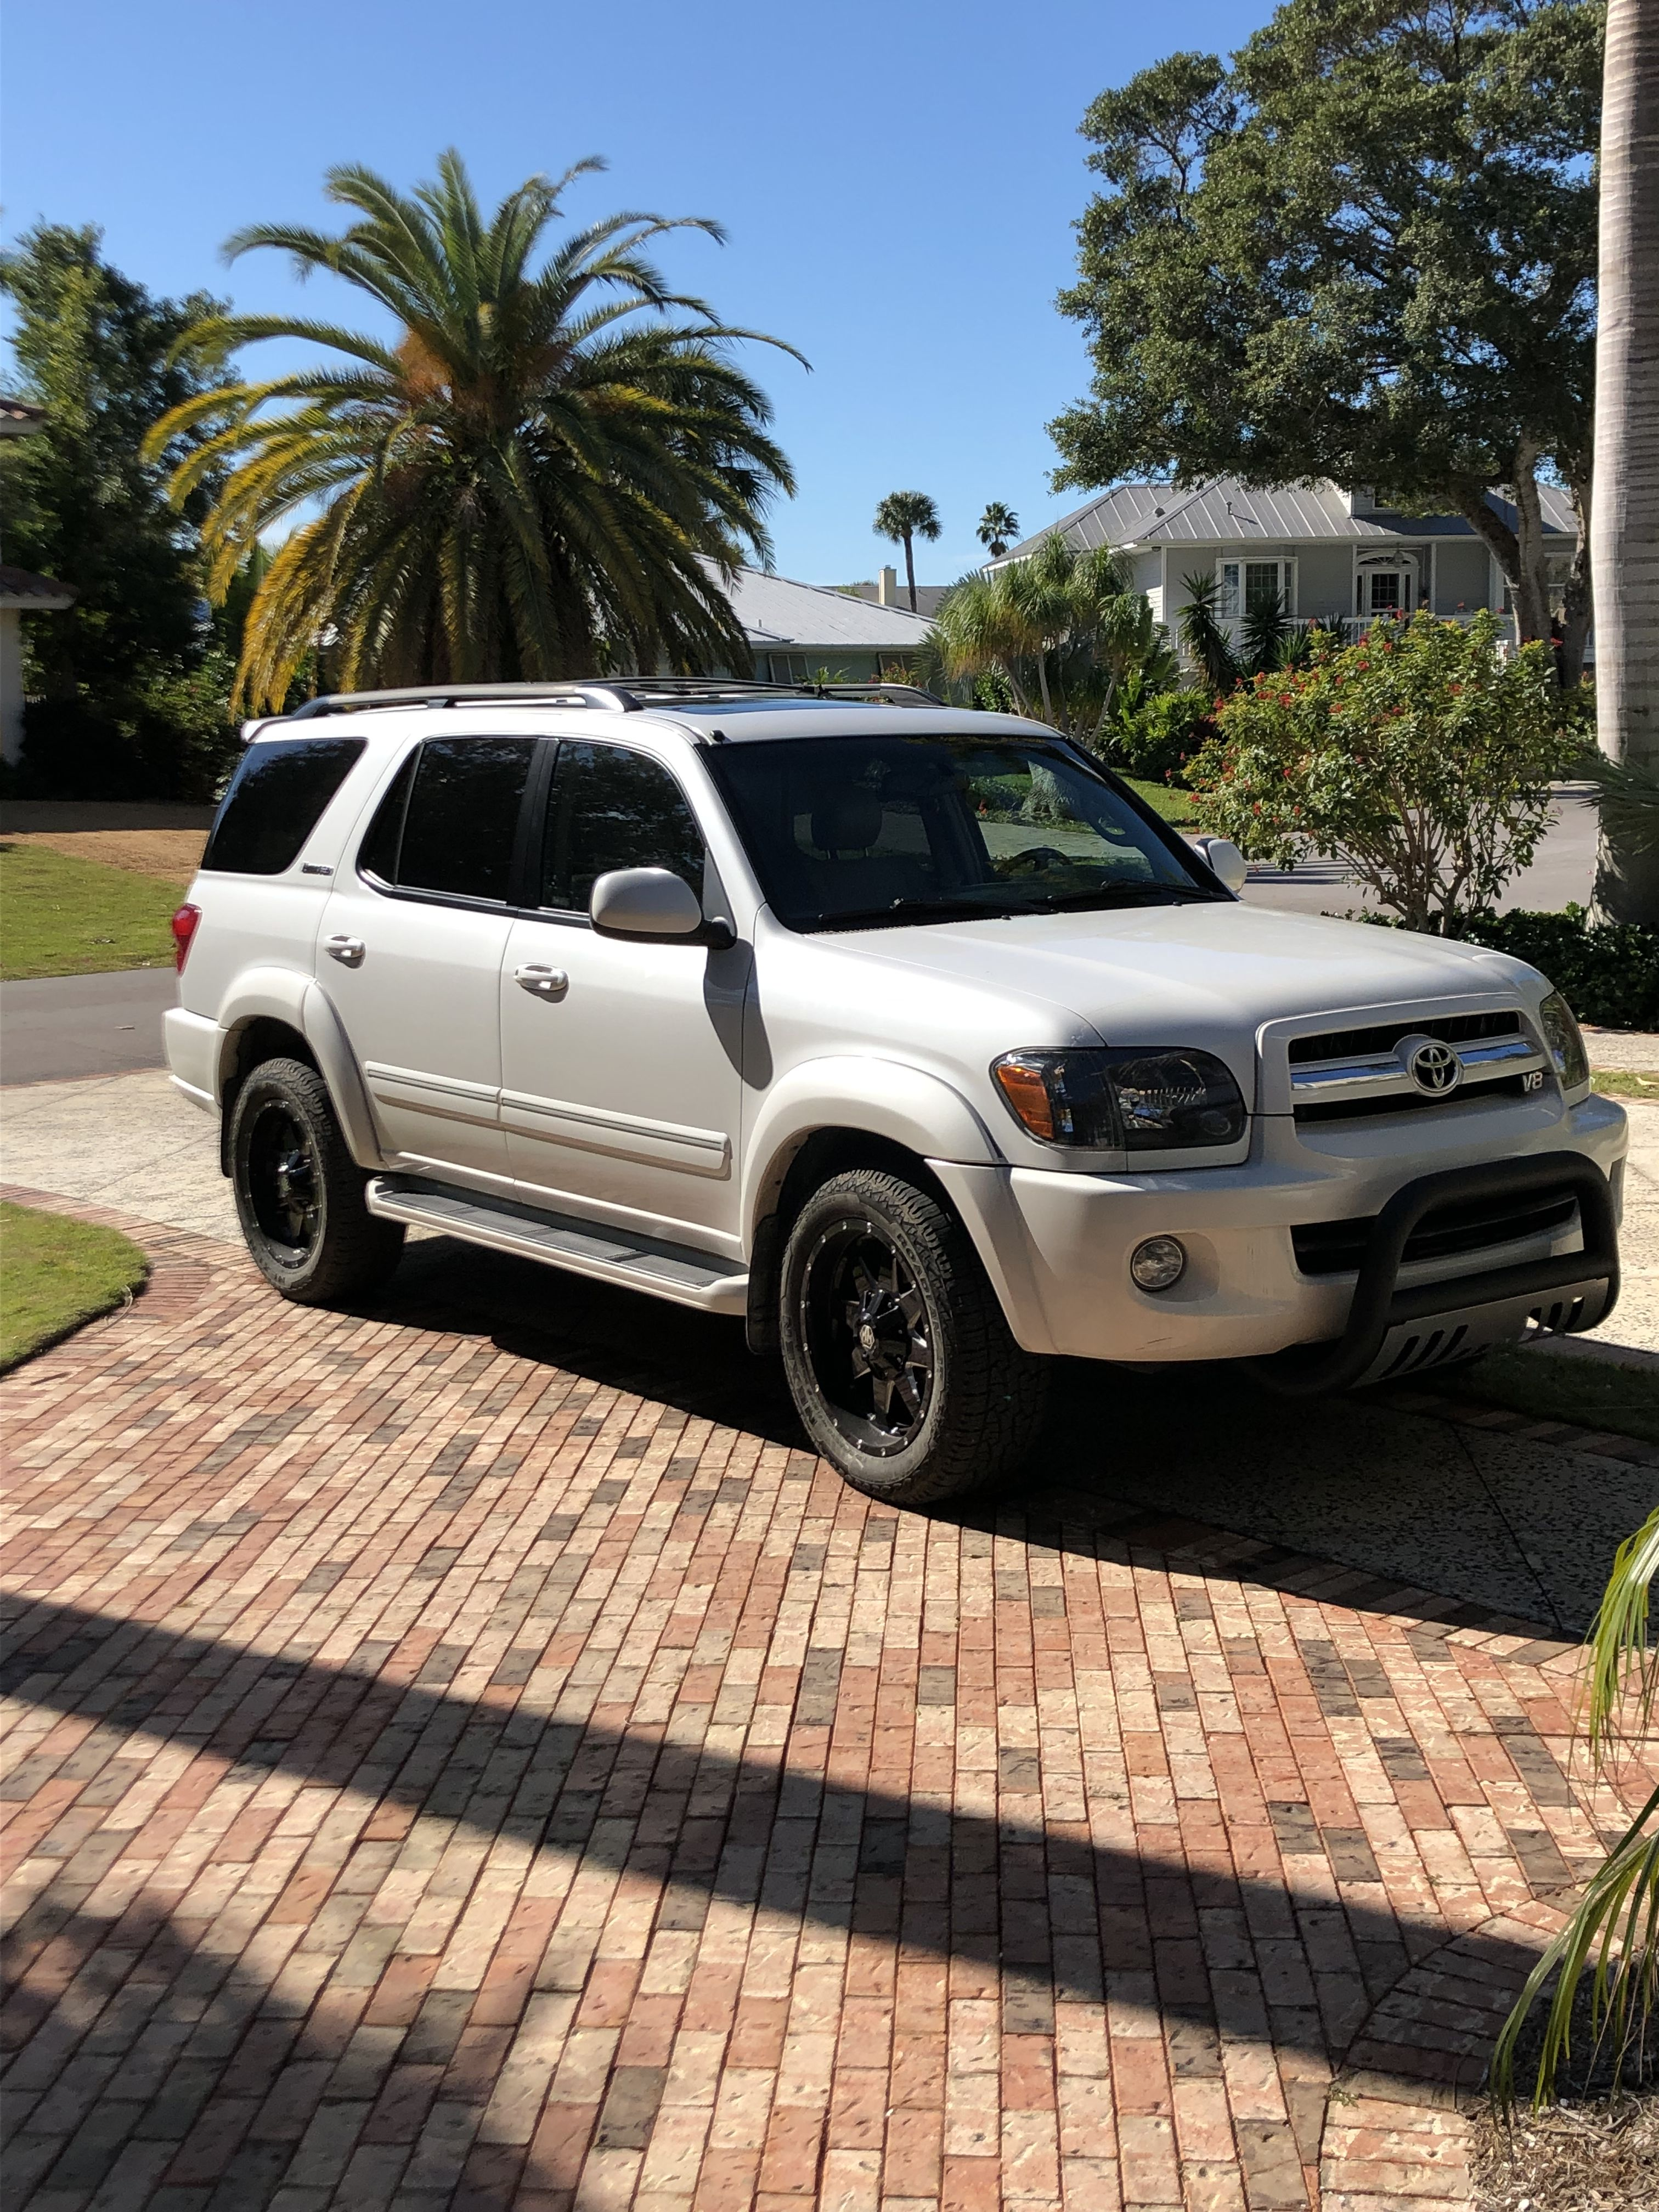 2005 Toyota Sequoia Limited Four Wheel Drive 4 7 L V 8 Customized With A Bull Bar 20 Inch Rims And Black Headlights Black Headlights Sequoia 20 Inch Rims